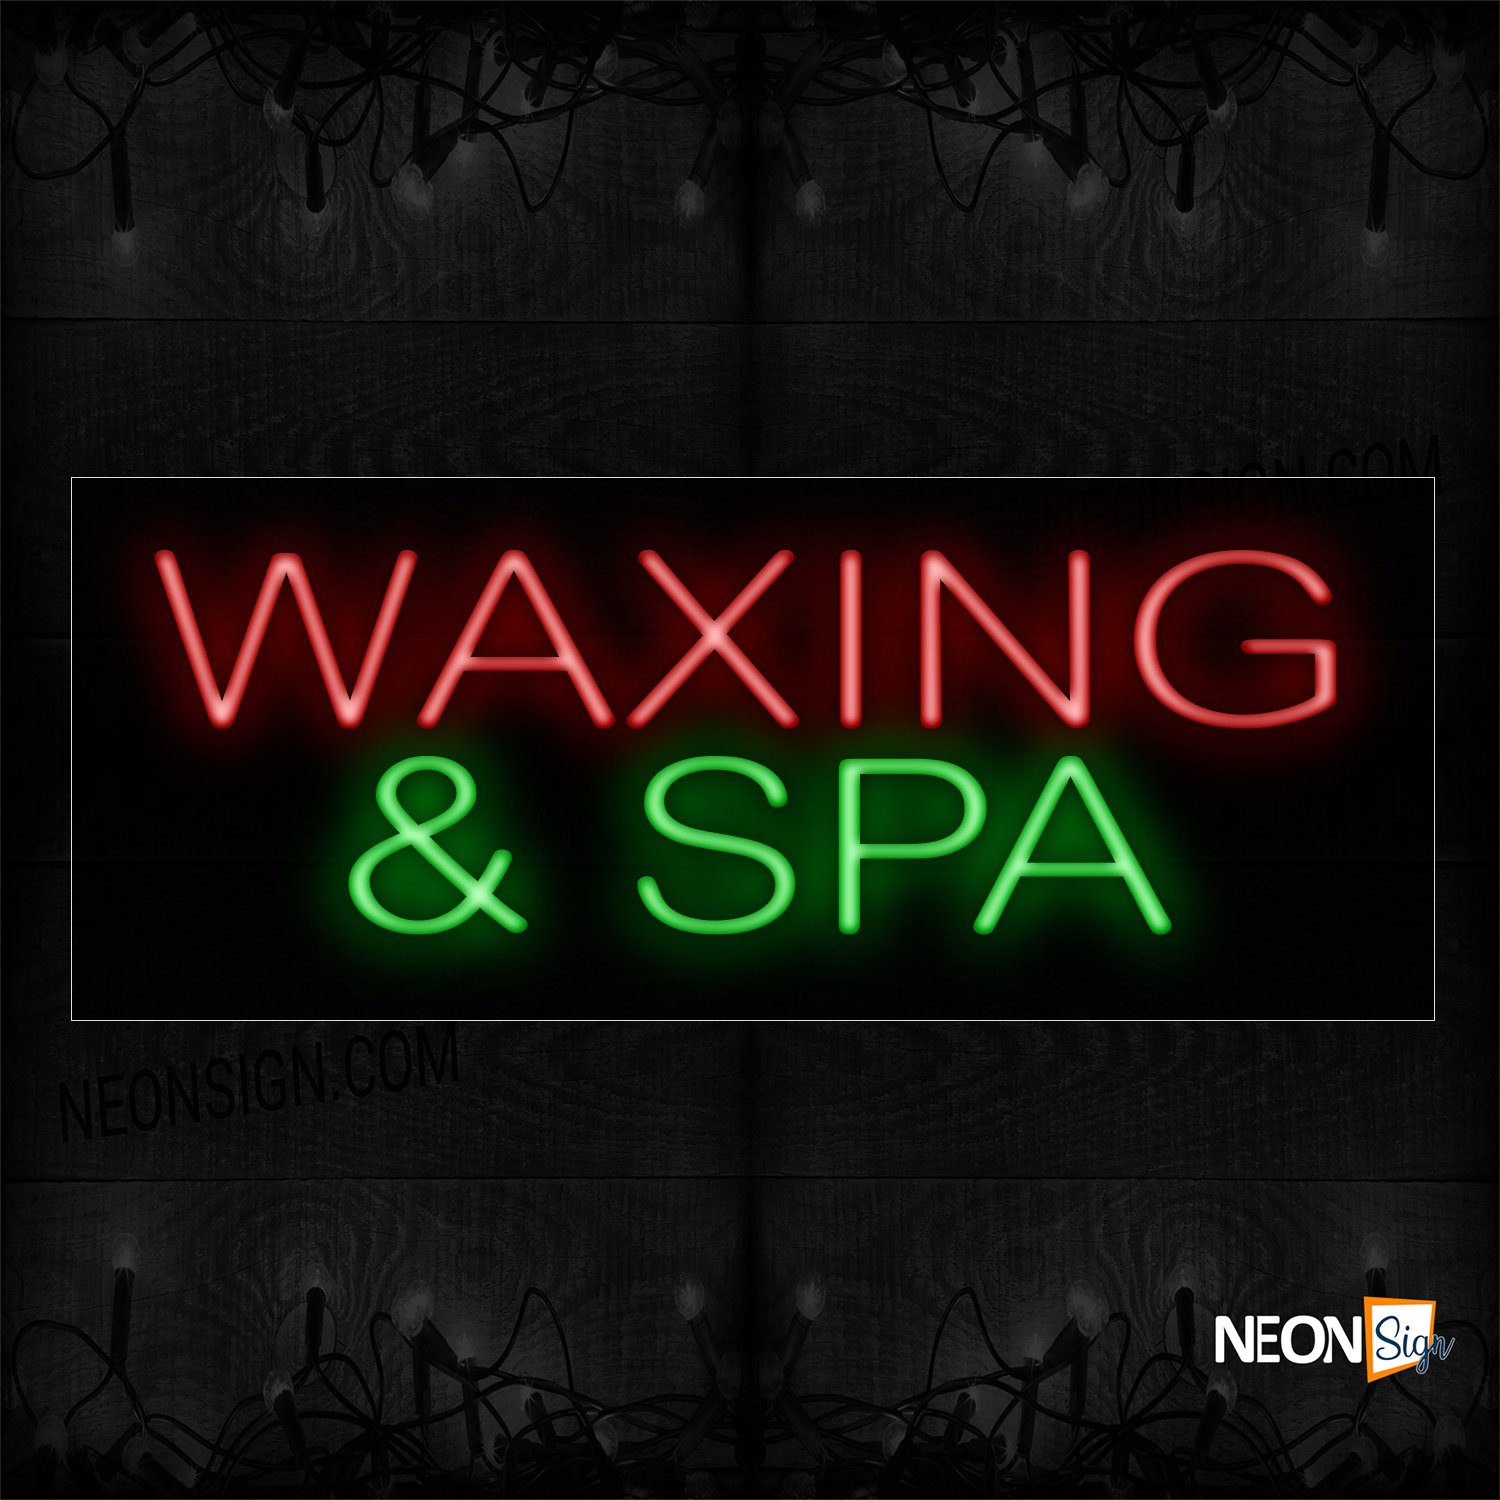 Image of 12343 Waxing & Spa Neon Signs_10x24 Black Backing